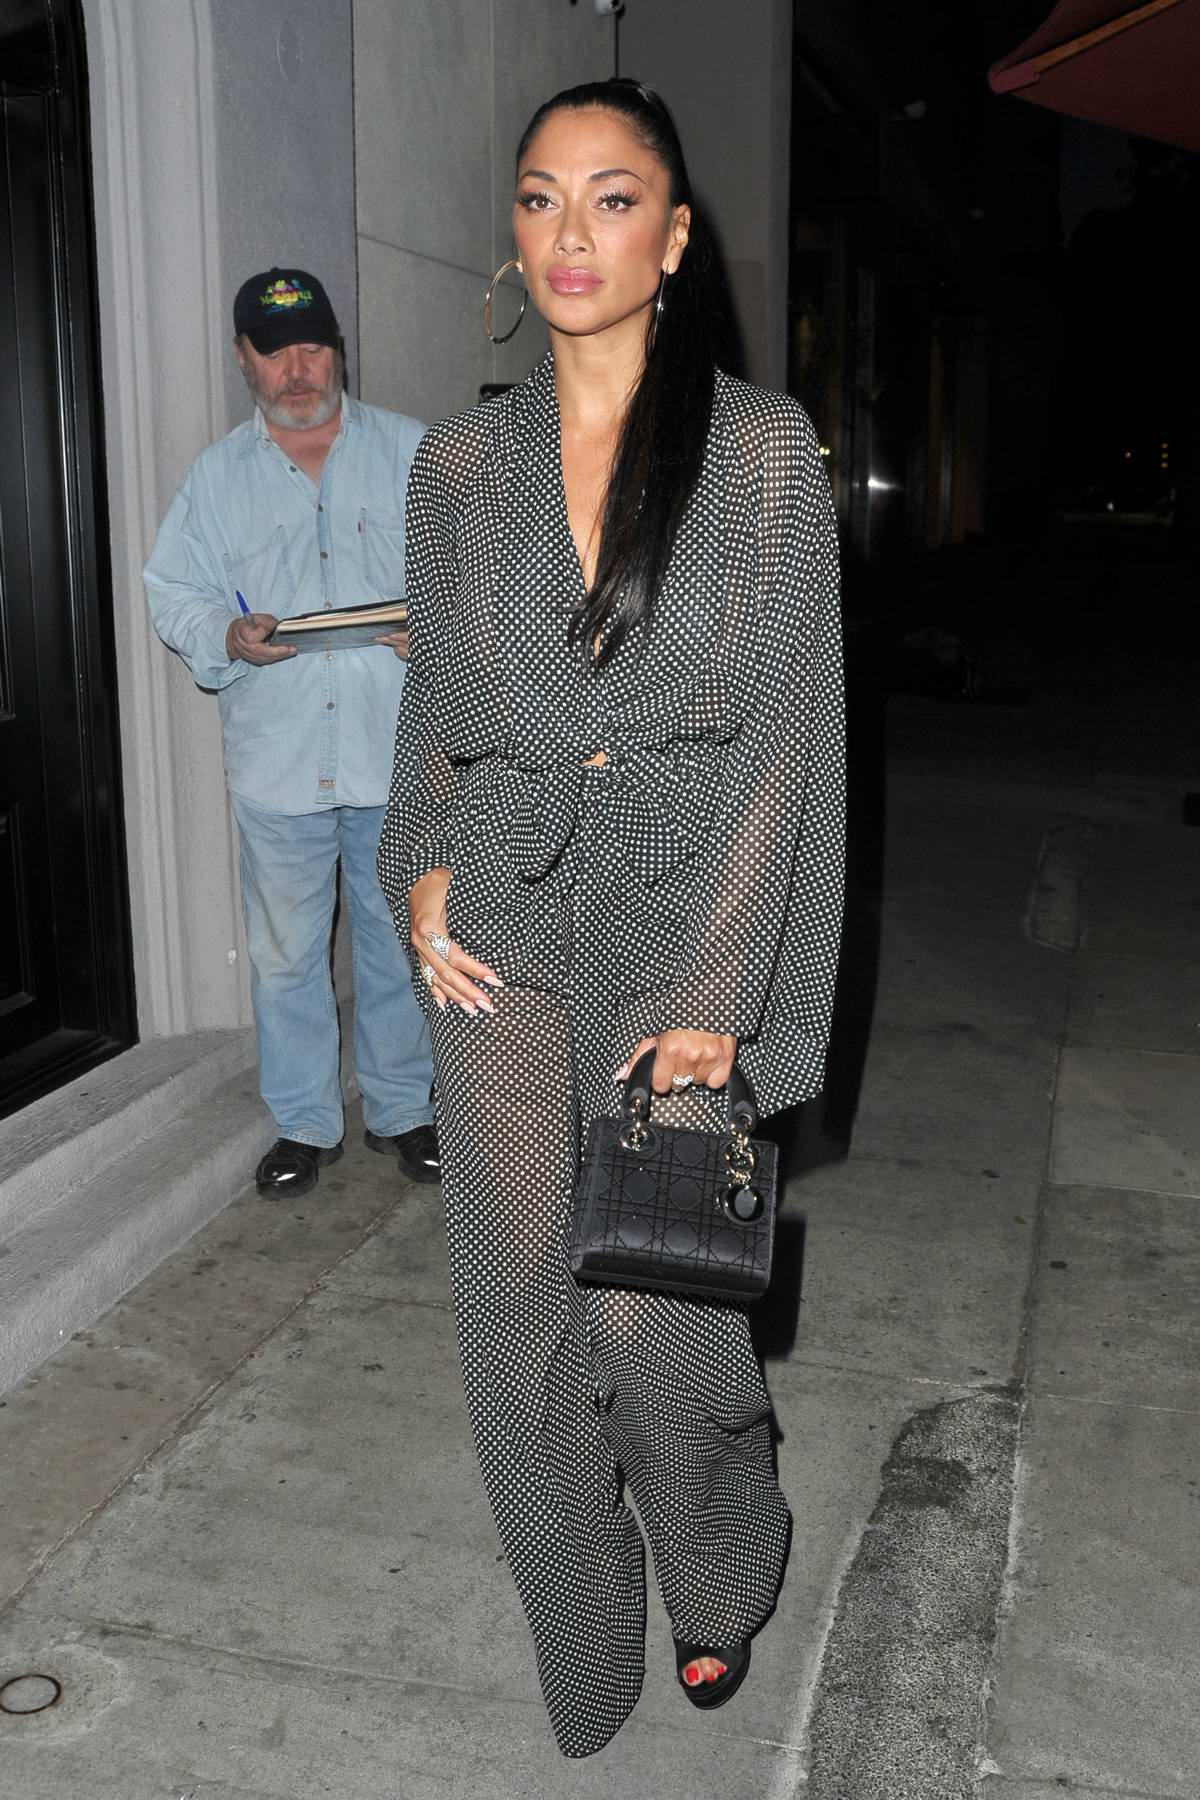 Nicole Scherzinger rocks a semi-sheer polka dotted jumpsuit as she arrives at Craig's in West Hollywood, Los Angeles